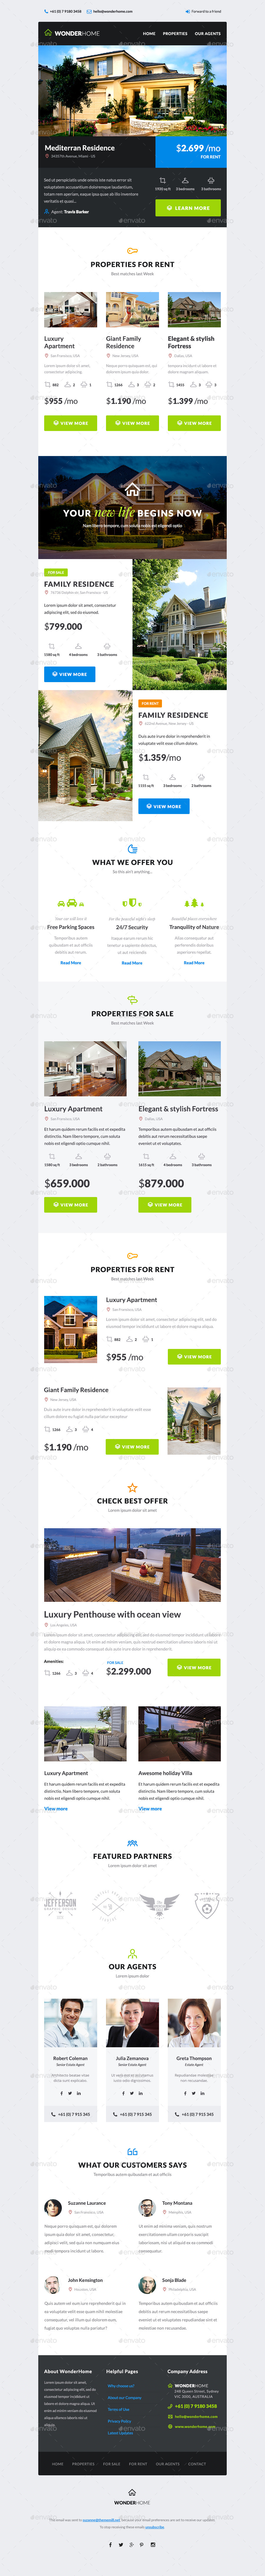 WonderHome   Real Estate E Newsletter Template   E Newsletters Web  Elements. 01_Preview ...